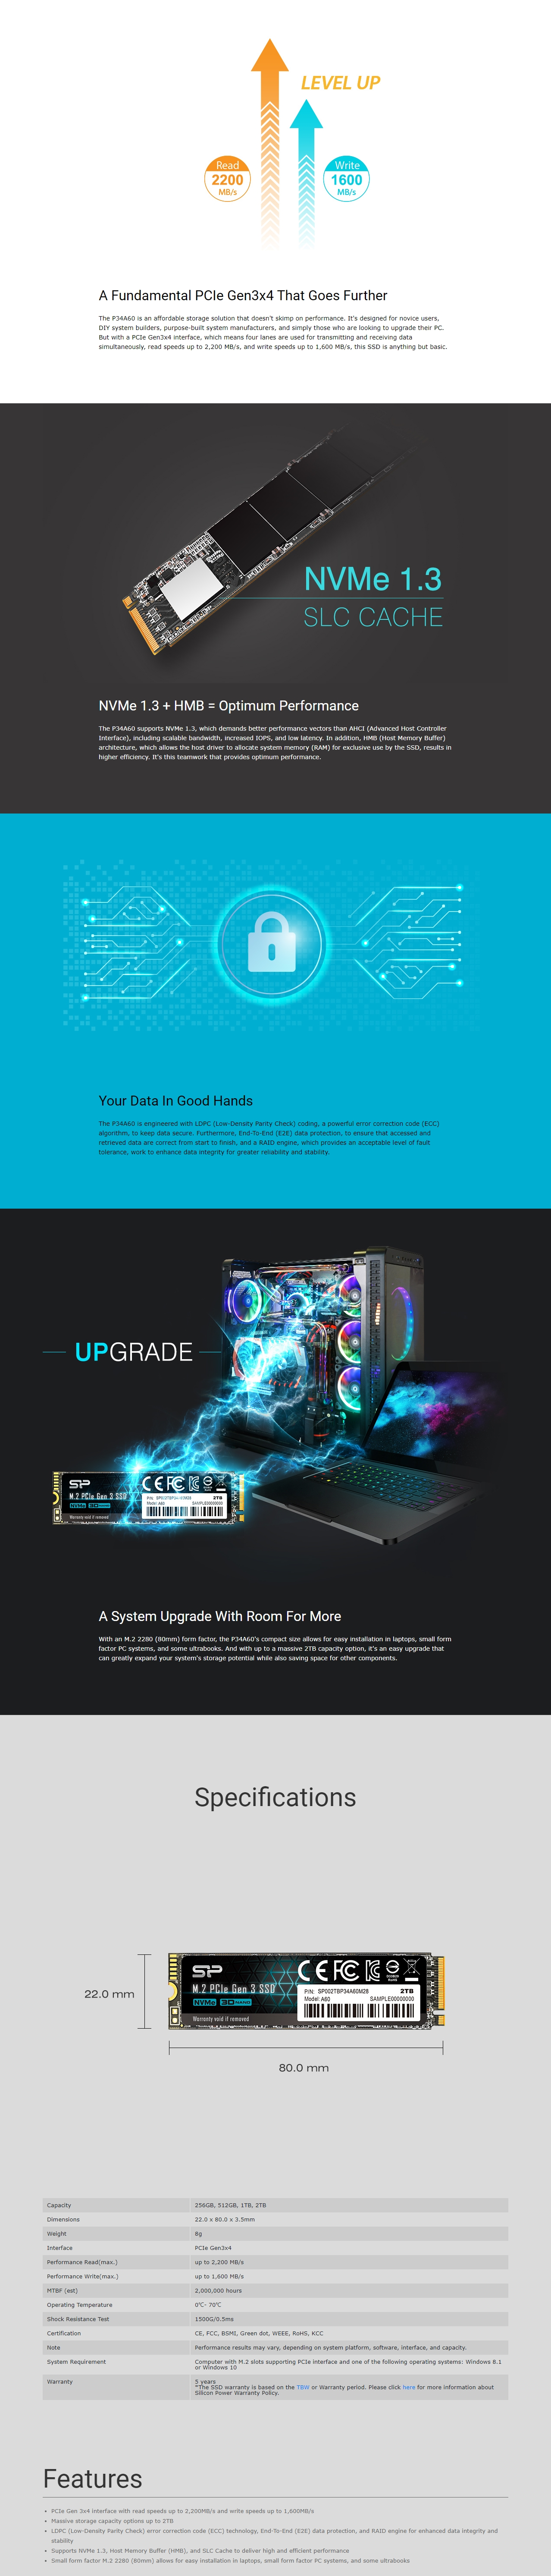 A large marketing image providing additional information about the product Silicon Power P34A60 512GB M.2 2280 PCIe SSD - Additional alt info not provided